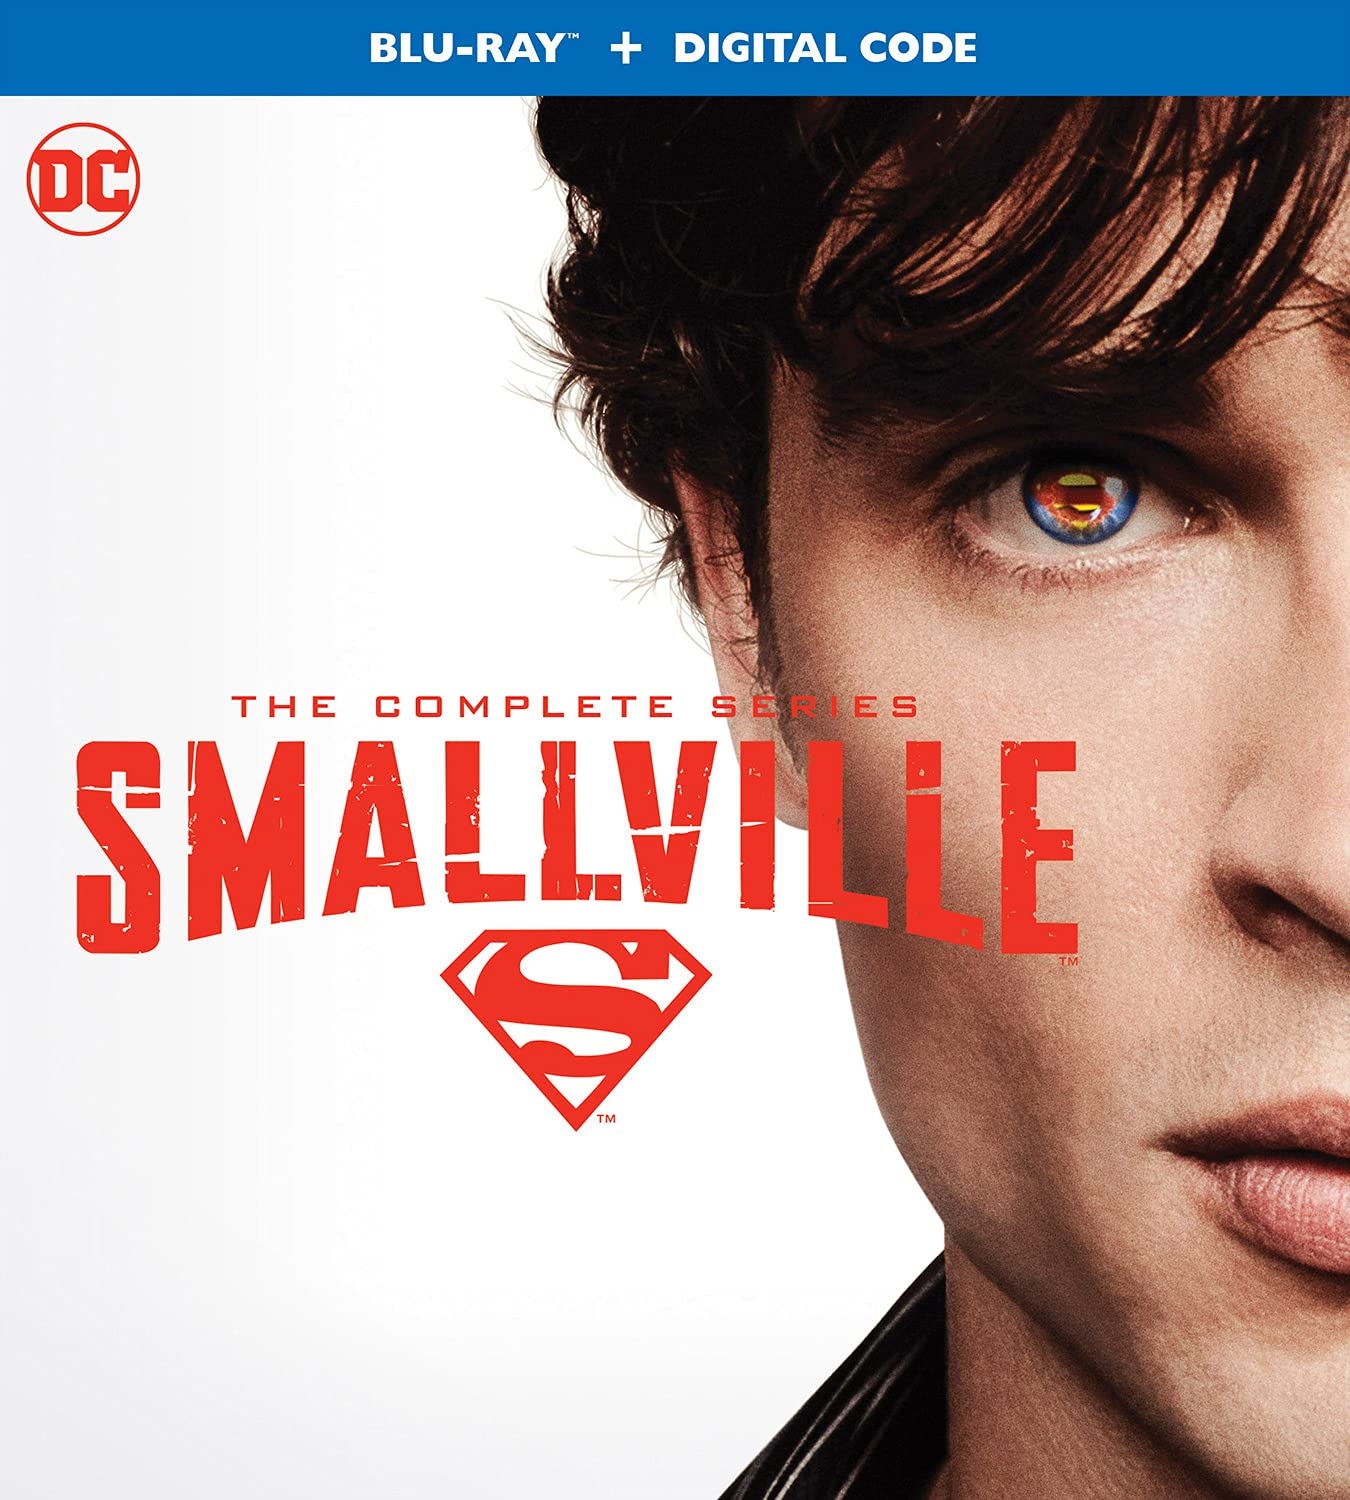 Smallville- The Complete Series Blu-ray Digital